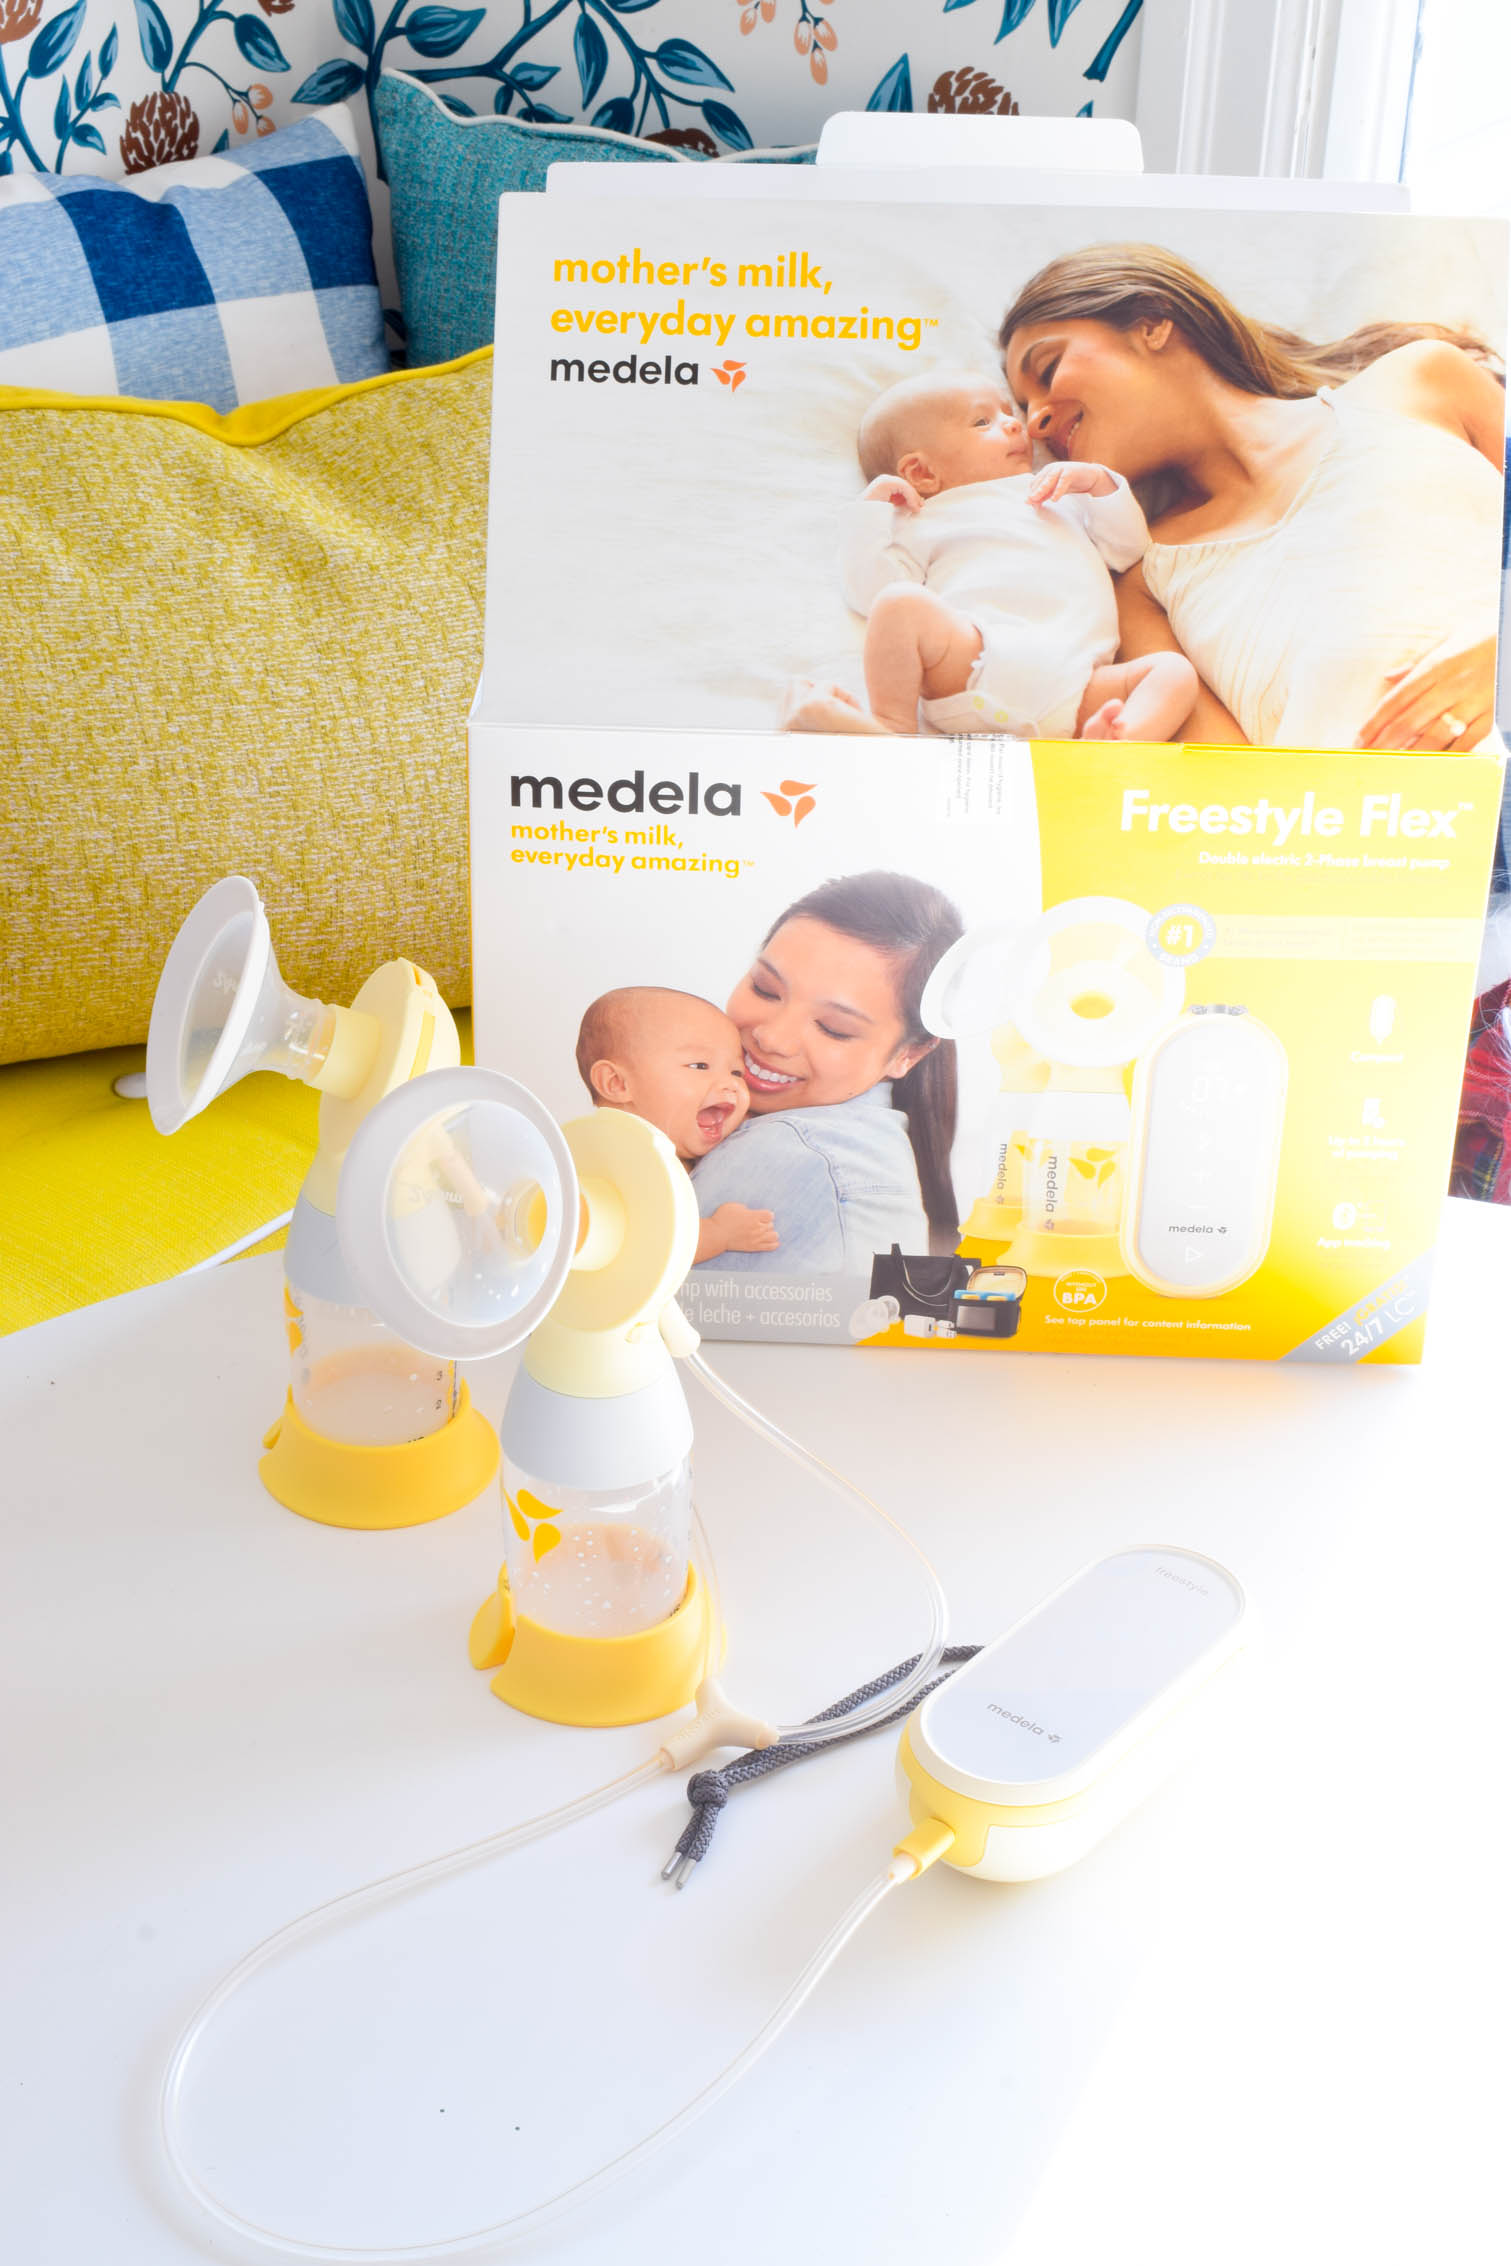 I'm sharing out breast feeding and breast pumping story, including why we chose a Medela Freestyle Flex Breast Pump for our journey.